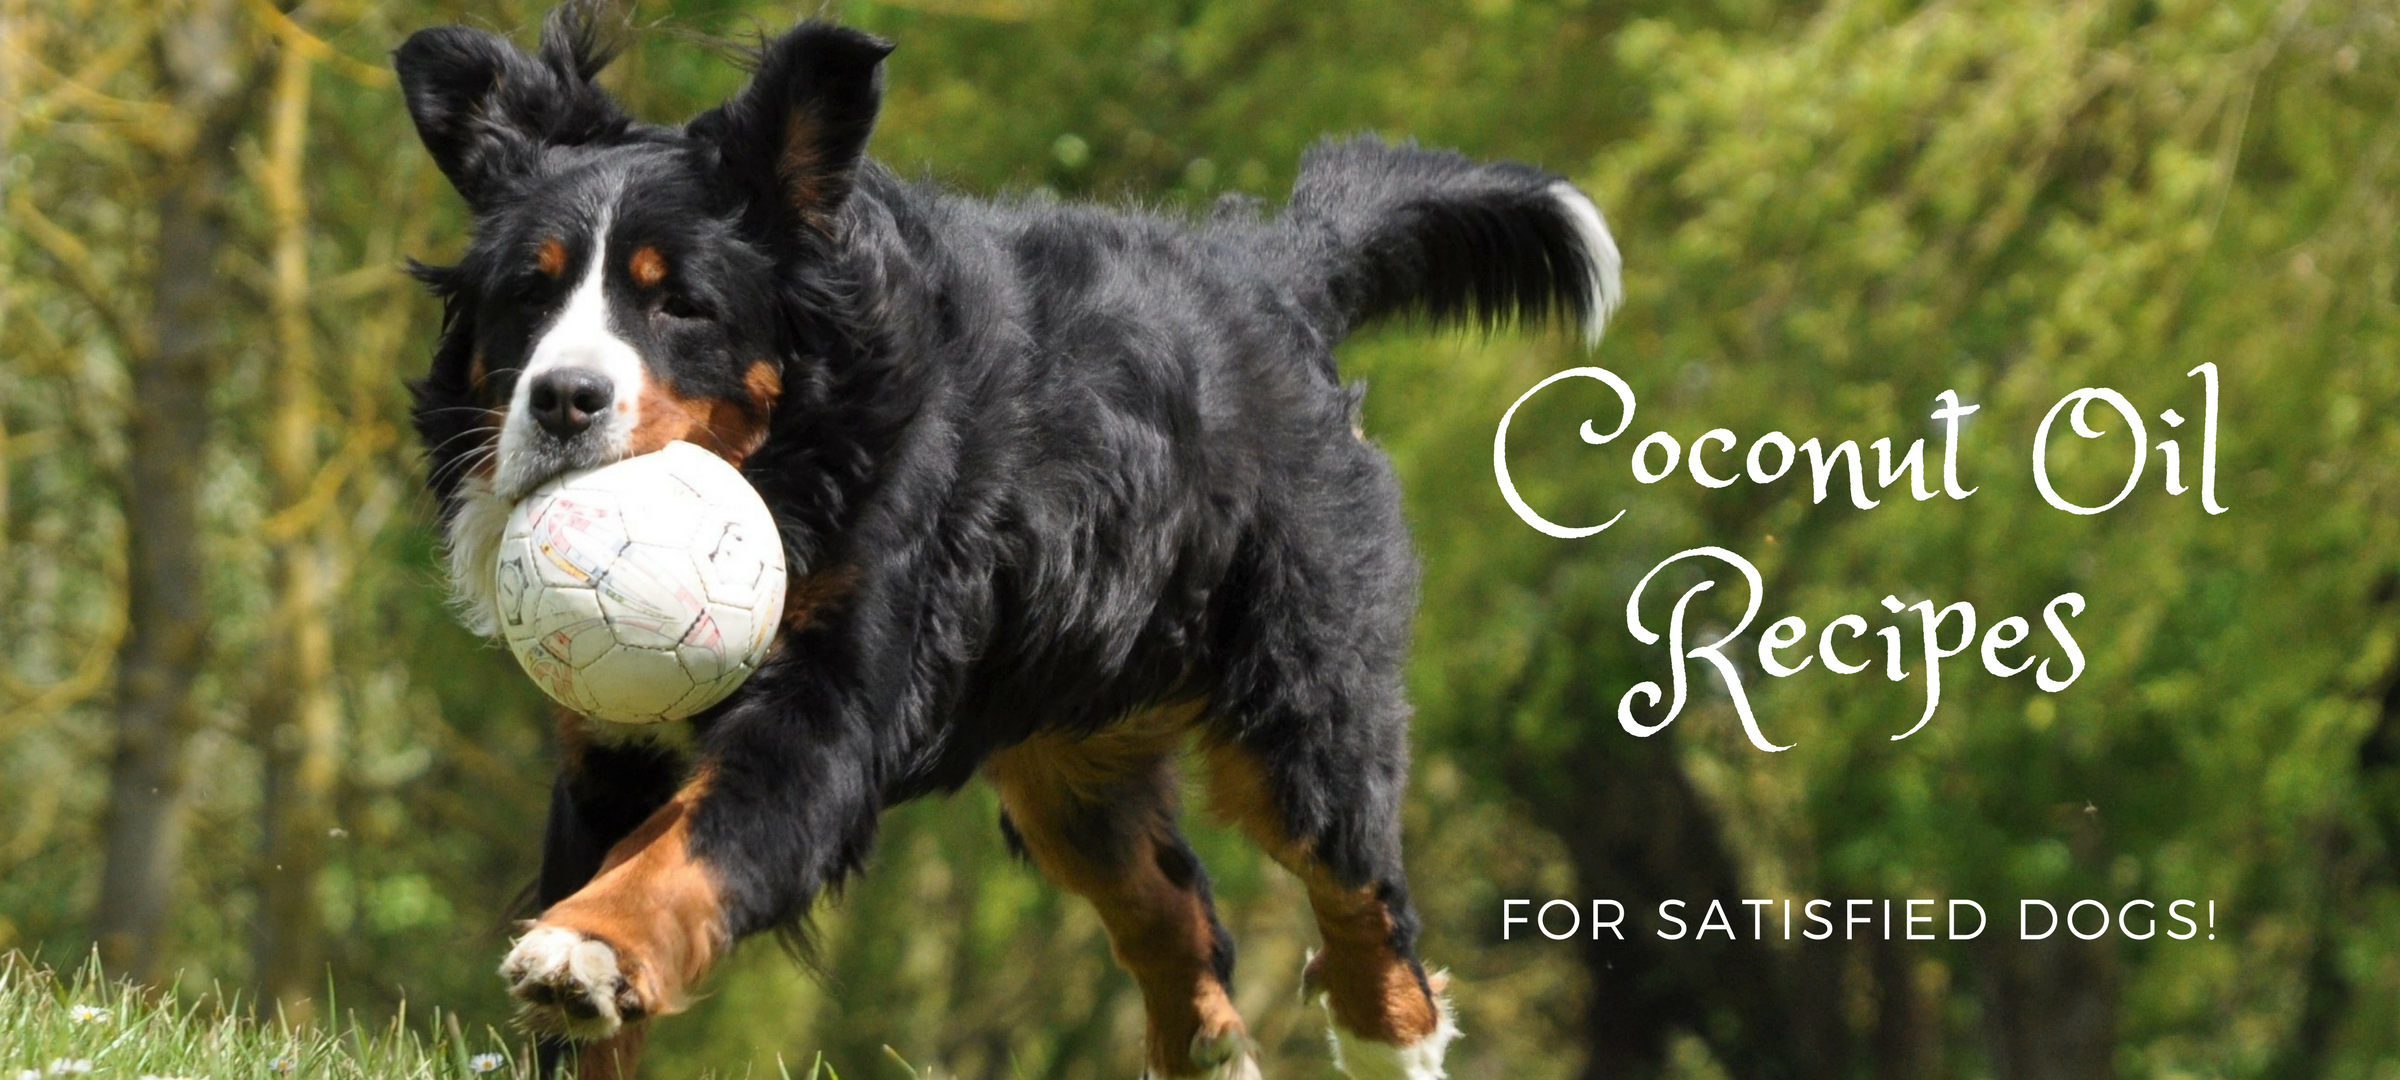 Coconut Oil Recipes for Satisfied Dogs